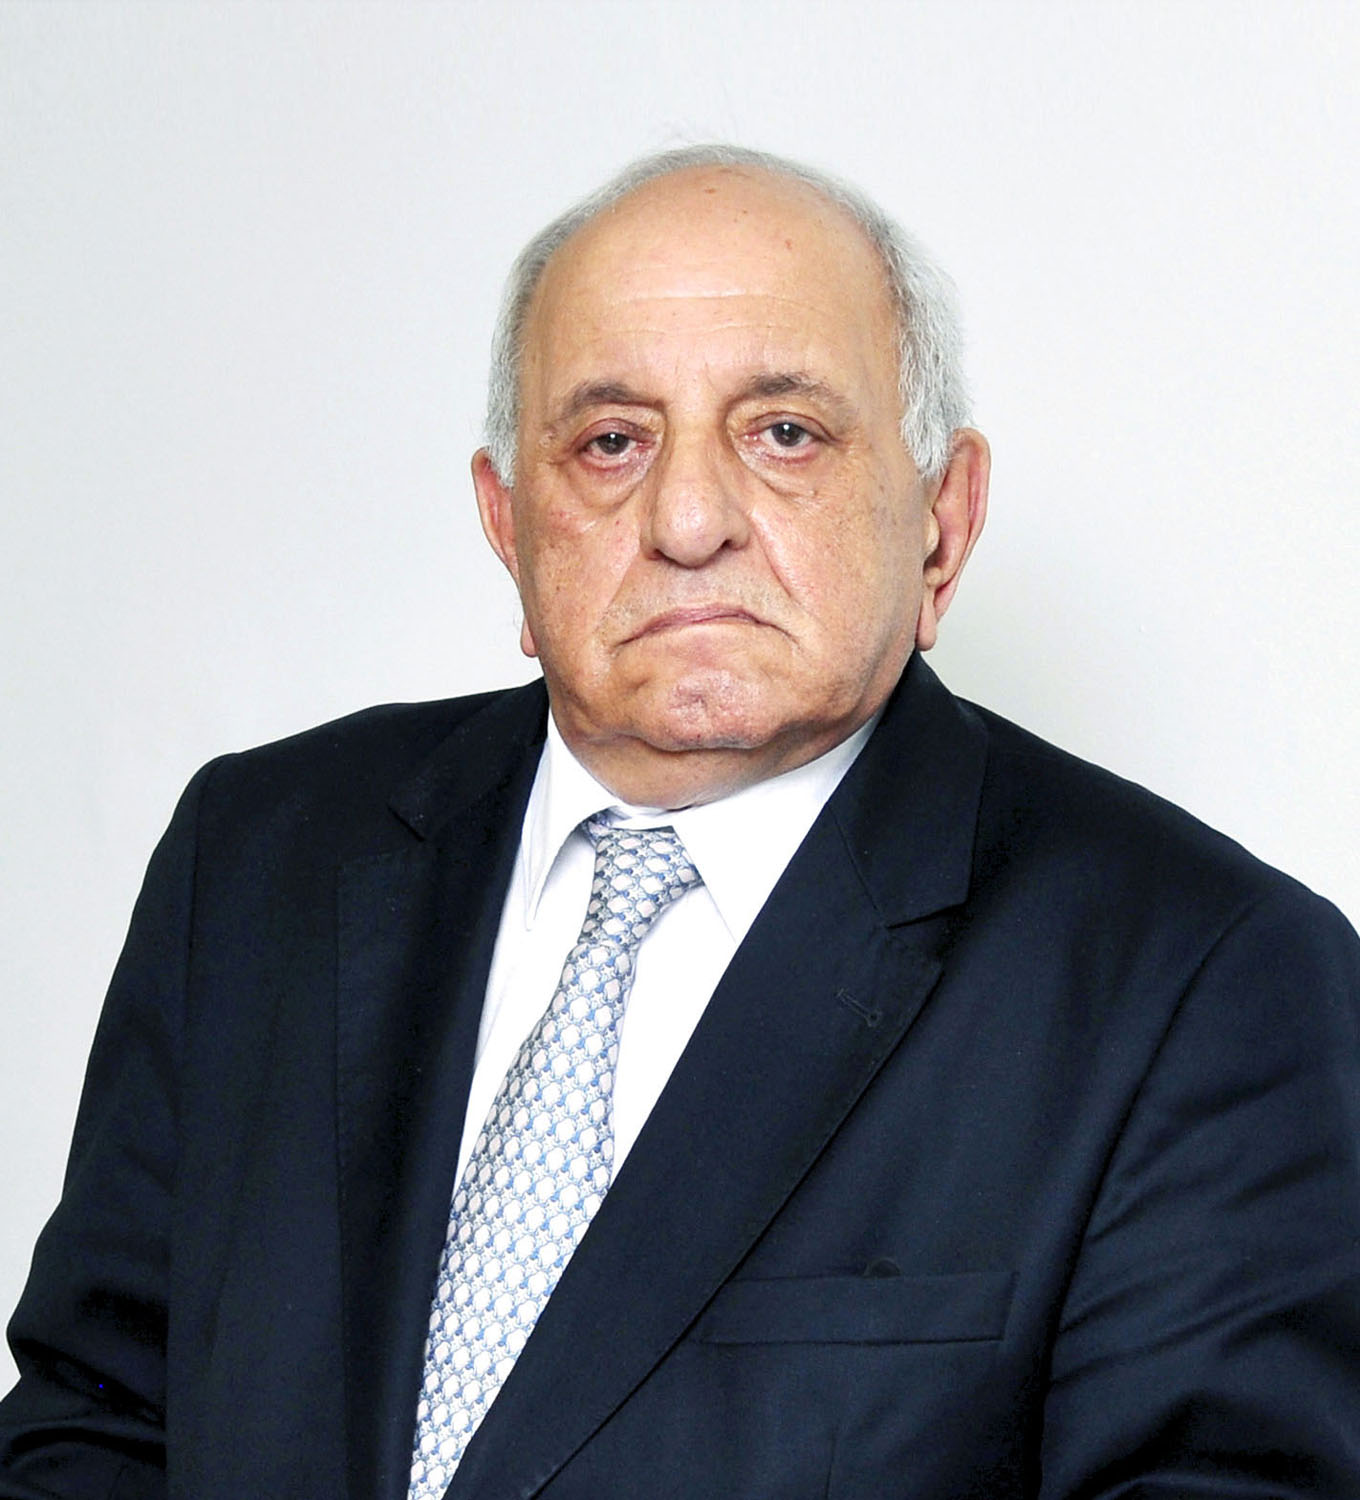 Dr.-Michel-Alaby-Secretary-General-and-CEO-of-the-Arab-Brazilian-Chamber-of-Commerce.jpg